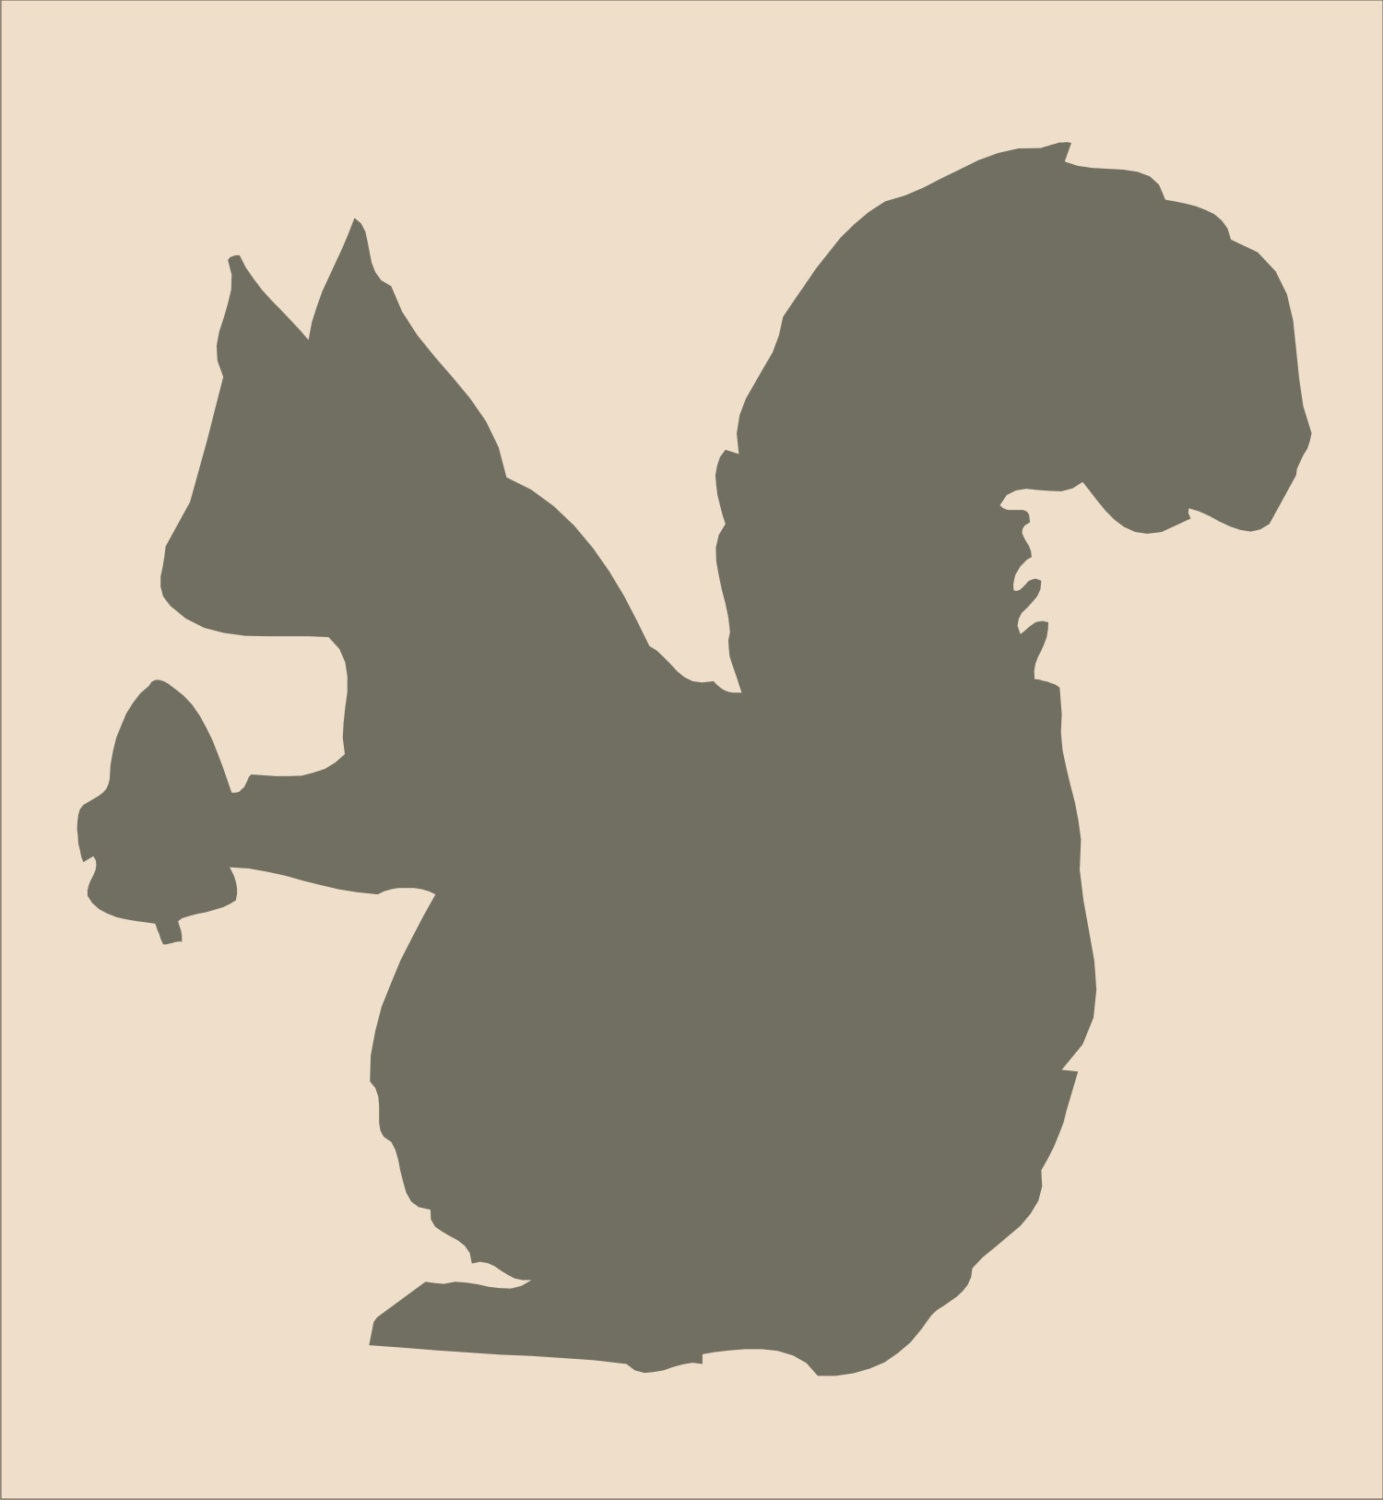 SQUIRREL Reusable Stencil 6 sizes Available Create Cabin